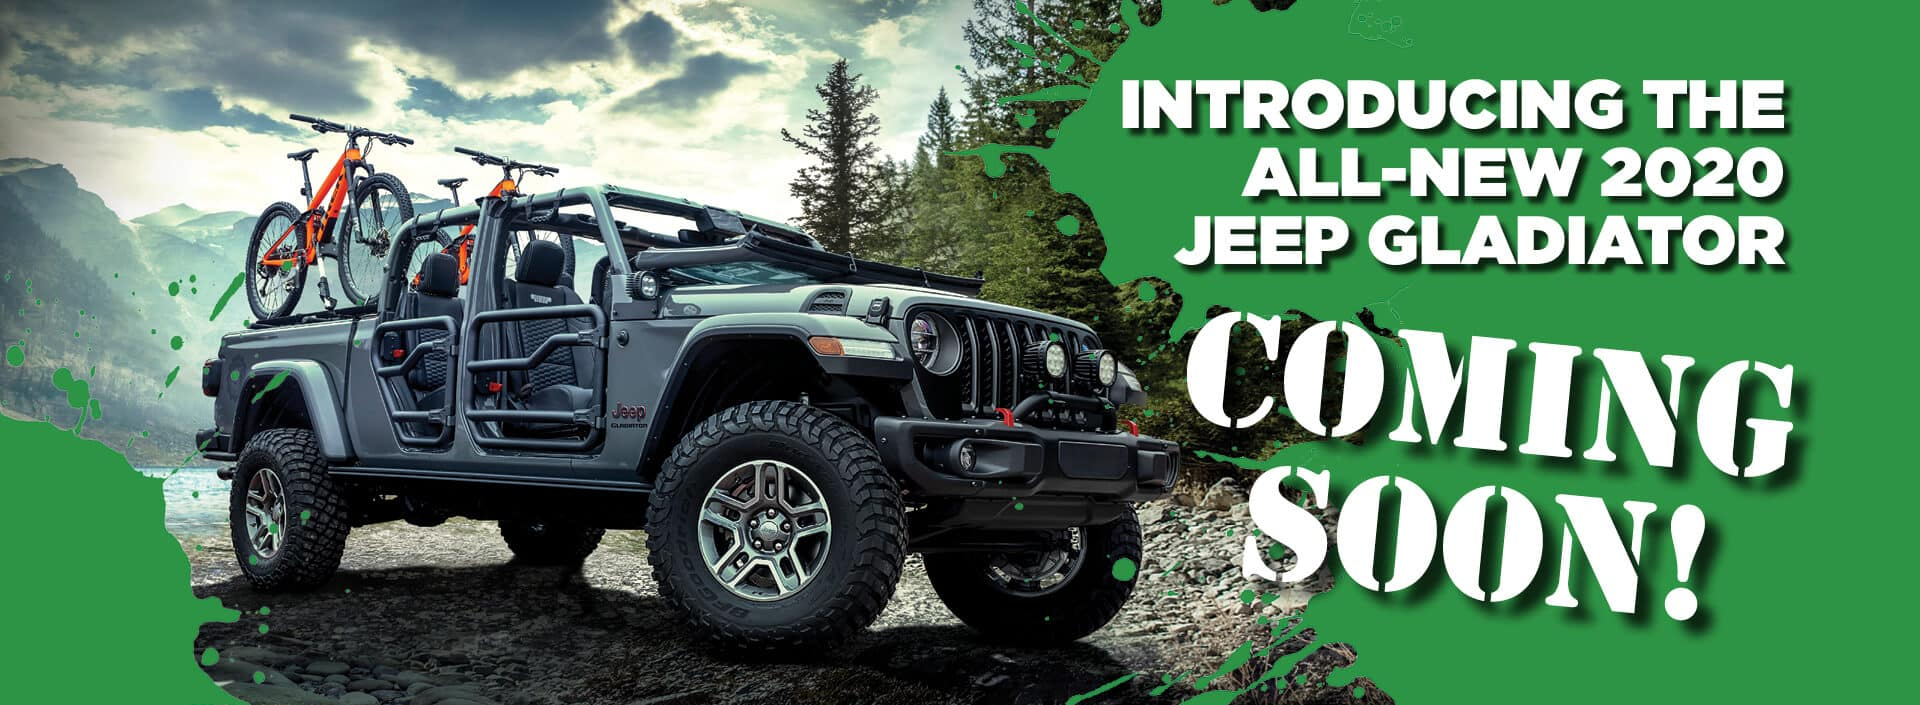 Introducing the All-New 2020 Jeep Gladiator